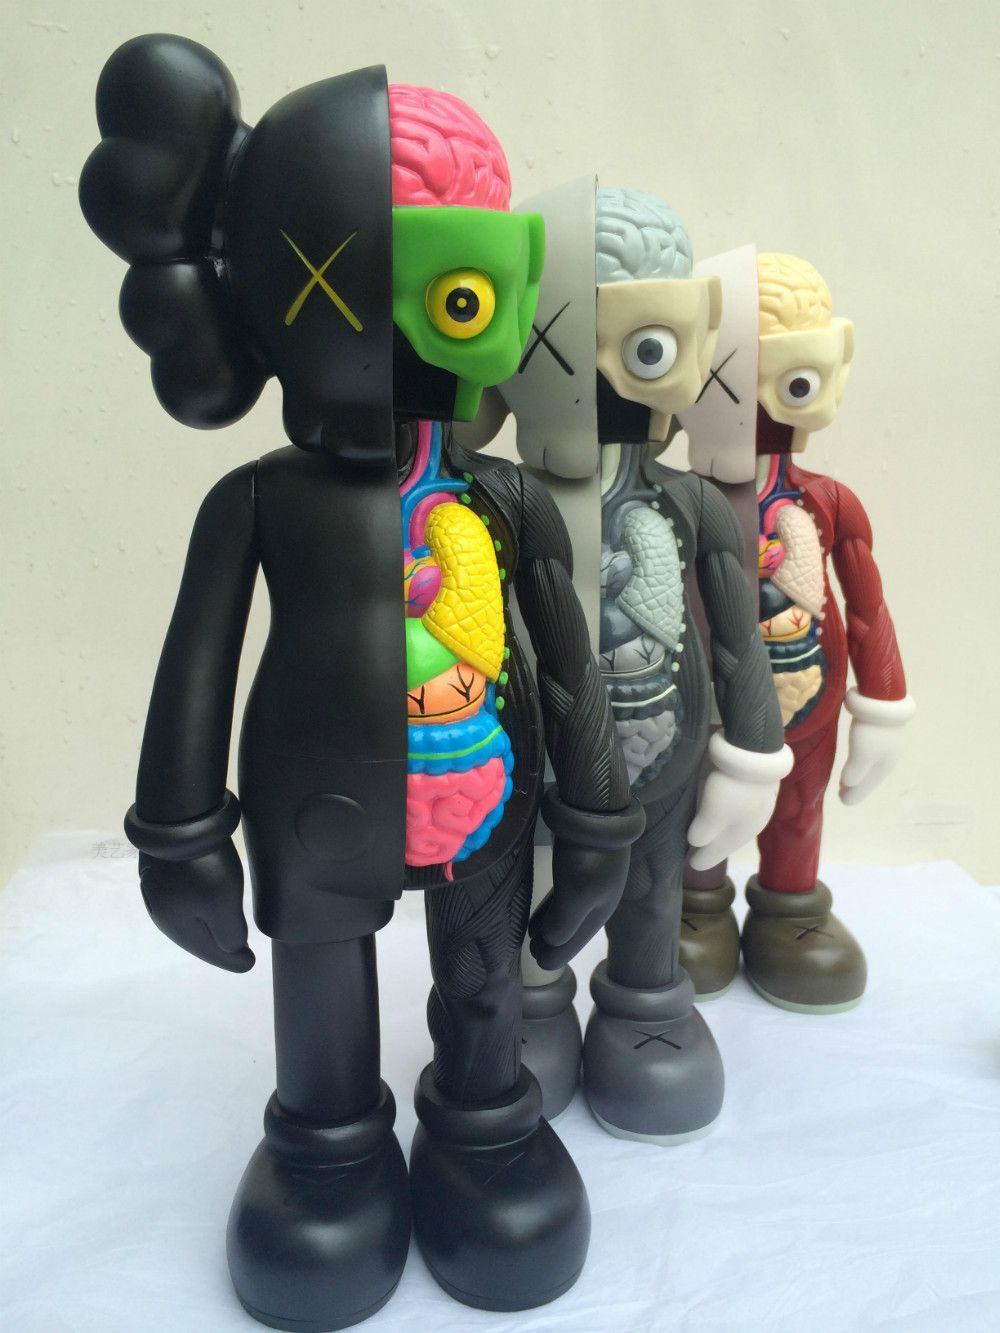 (Buy here: http://appdeal.ru/1wt0 ) 37cm High Quality Japanese Originalfake Kaws Companion 16inch PVC Action Figure Model Toys Gifts C0A23-1 for just US $45.99